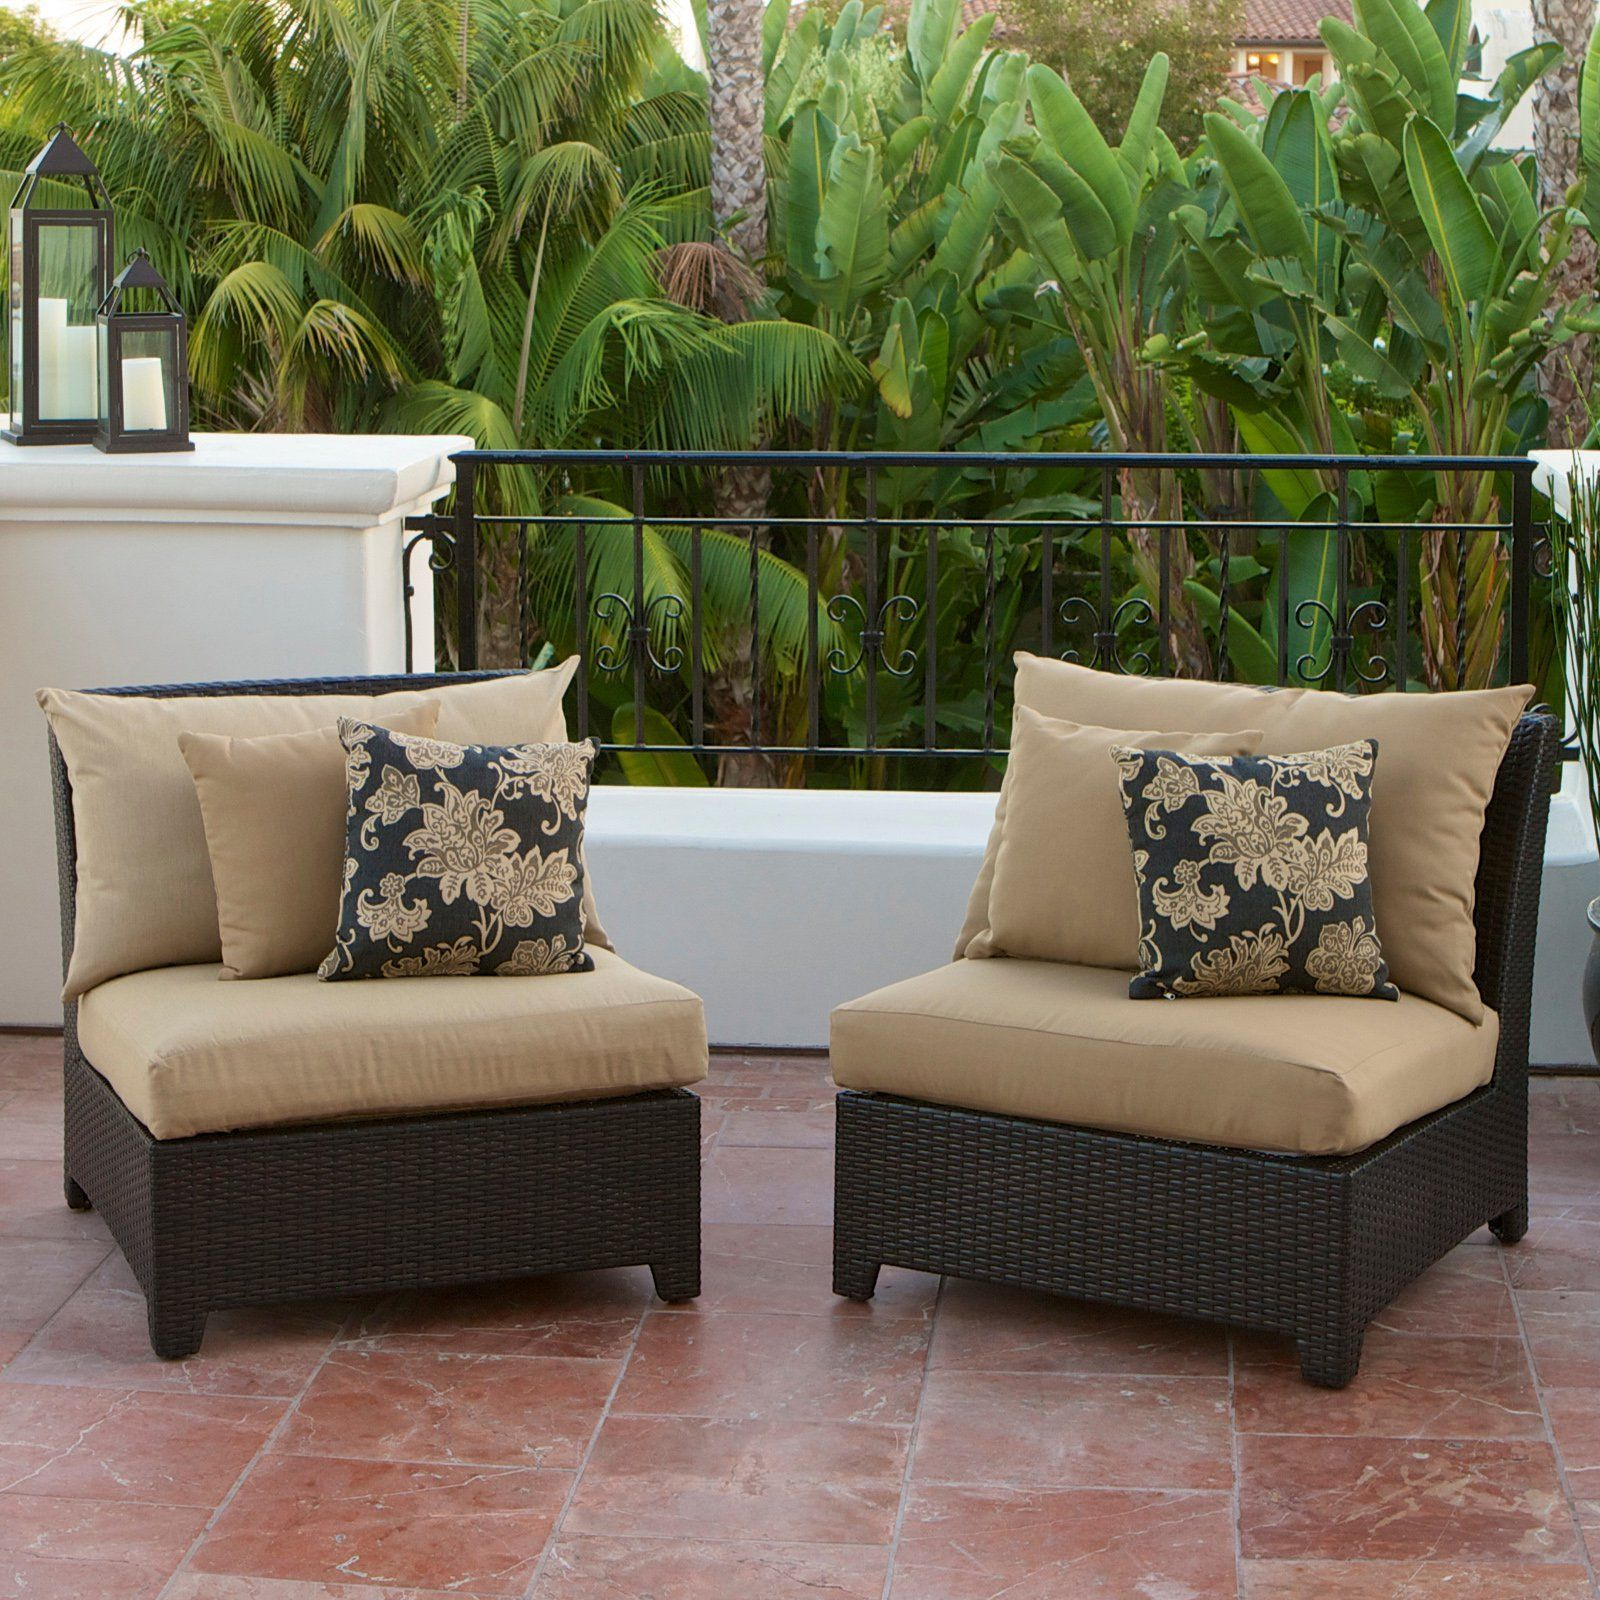 RST Outdoor Delano Armless Chair - Set of 2 | from hayneedle.com